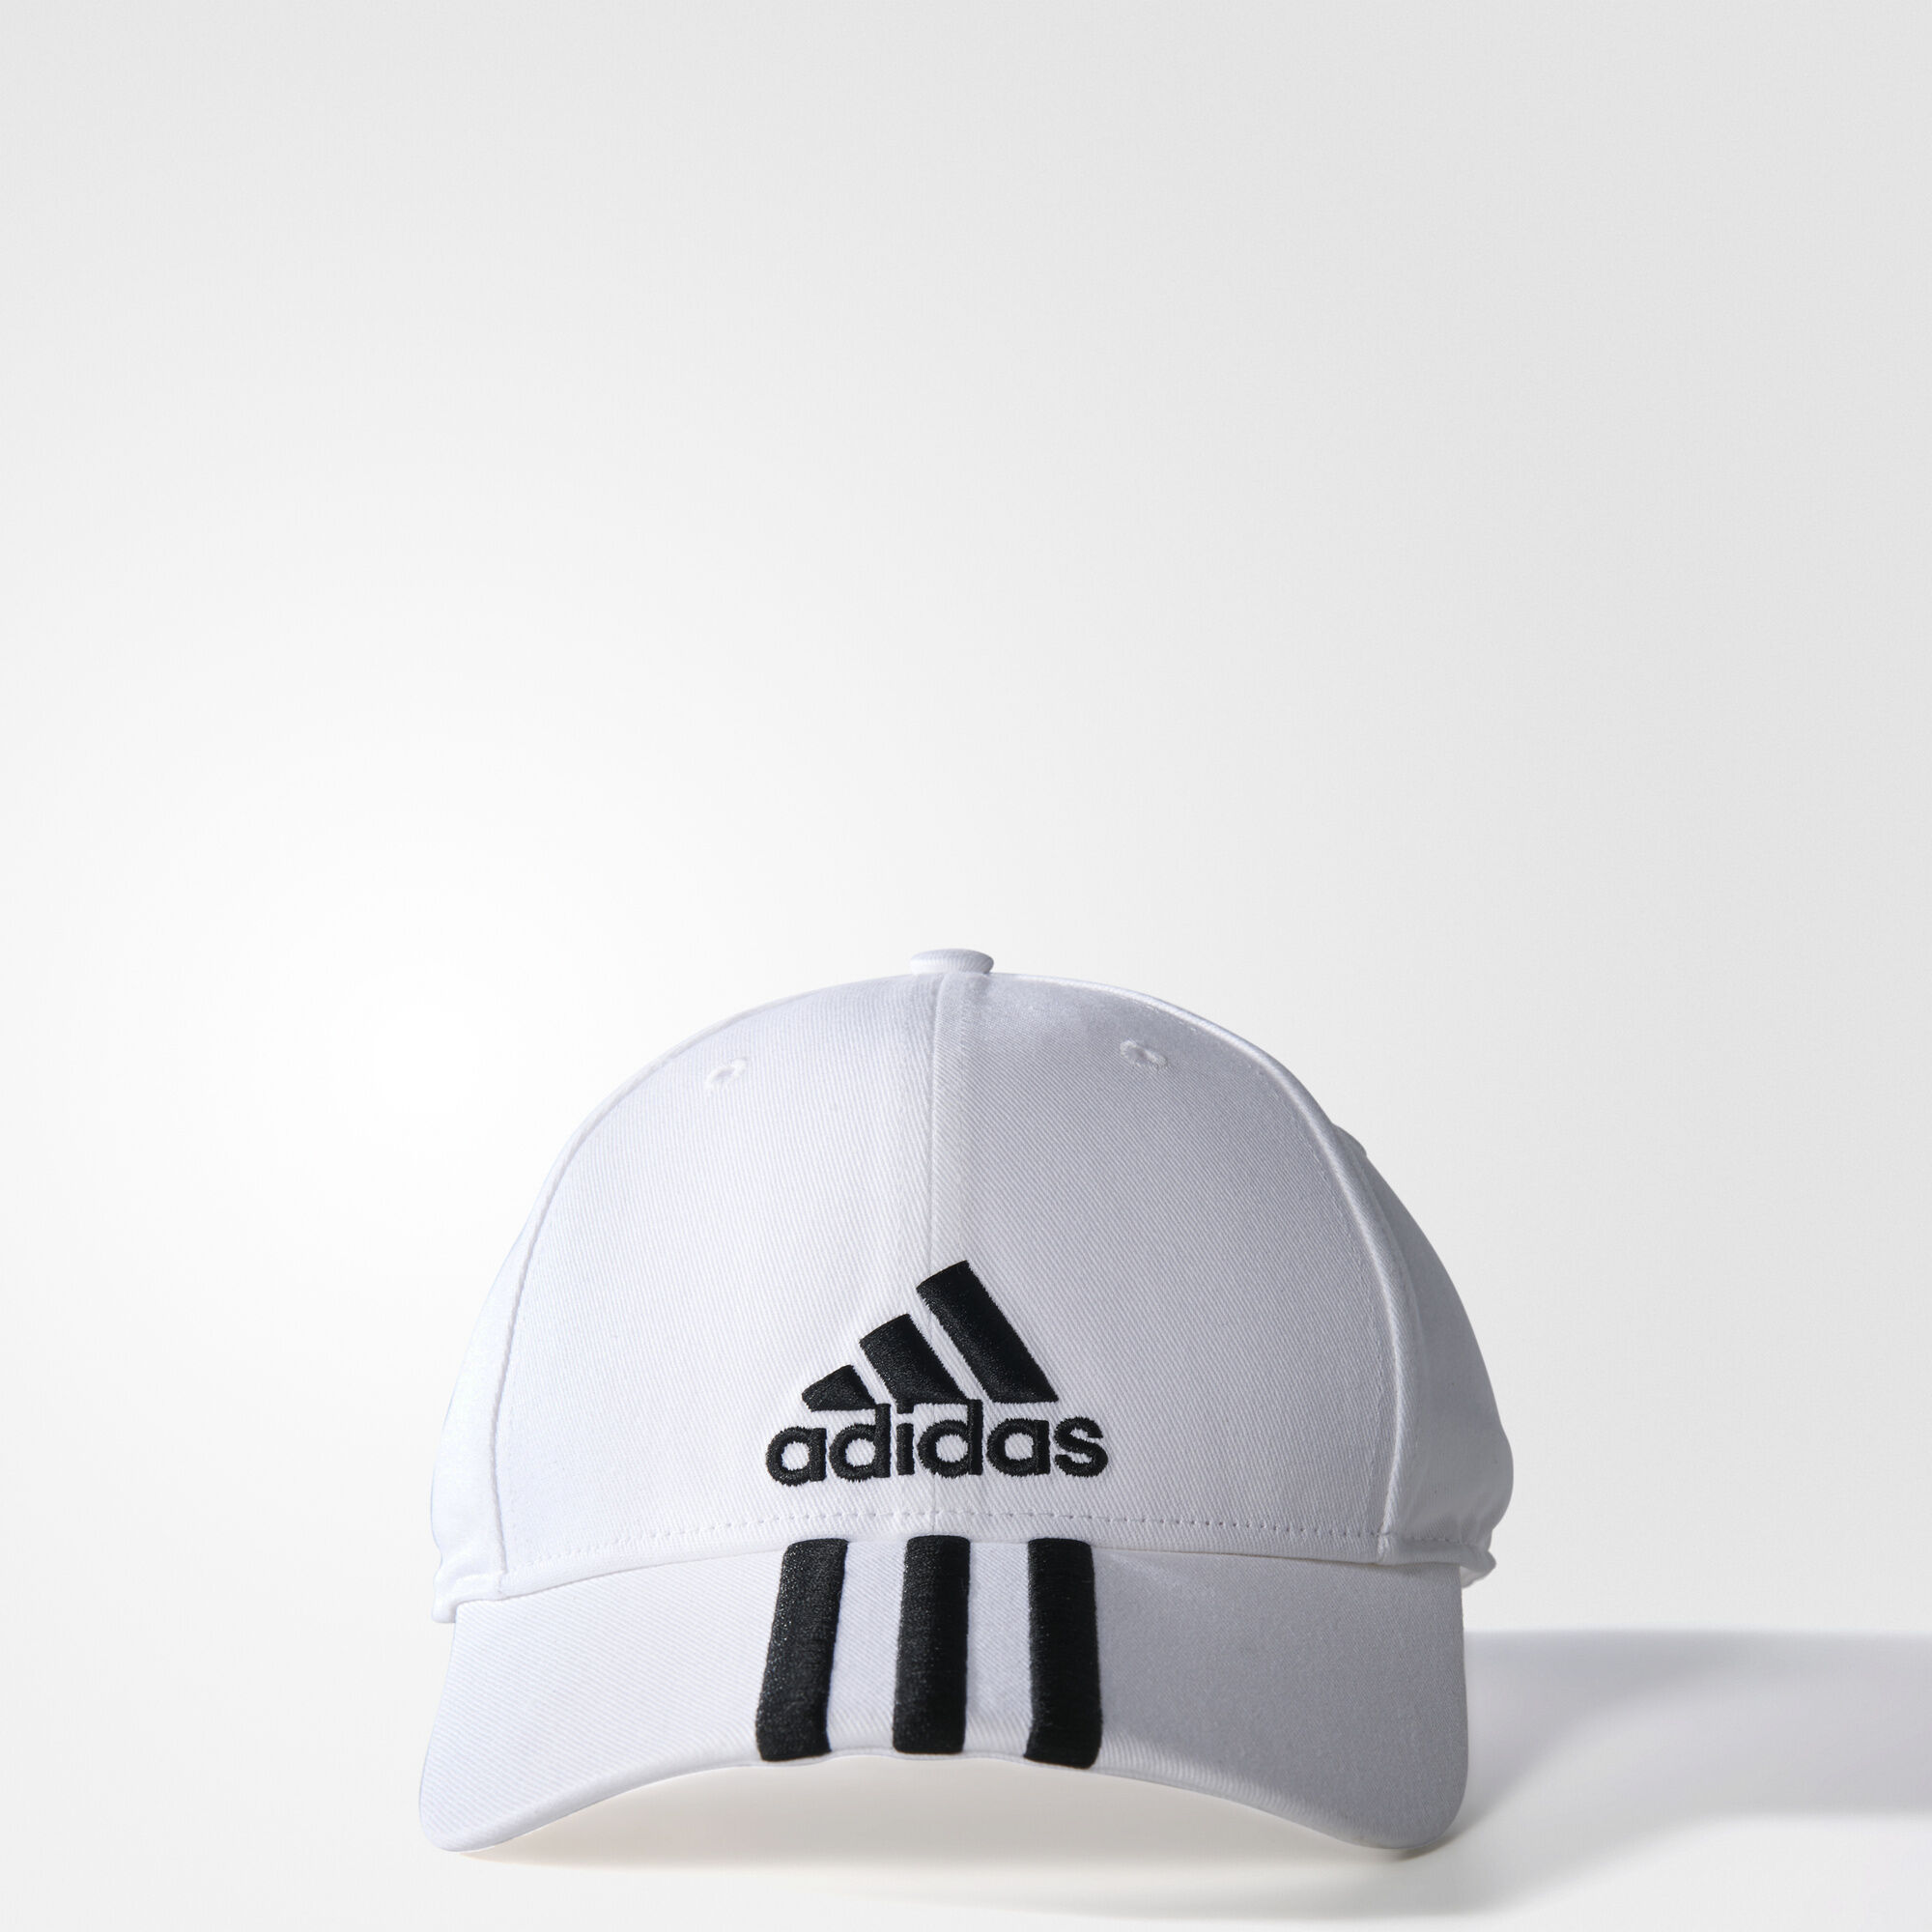 Adidas Cap Black And White